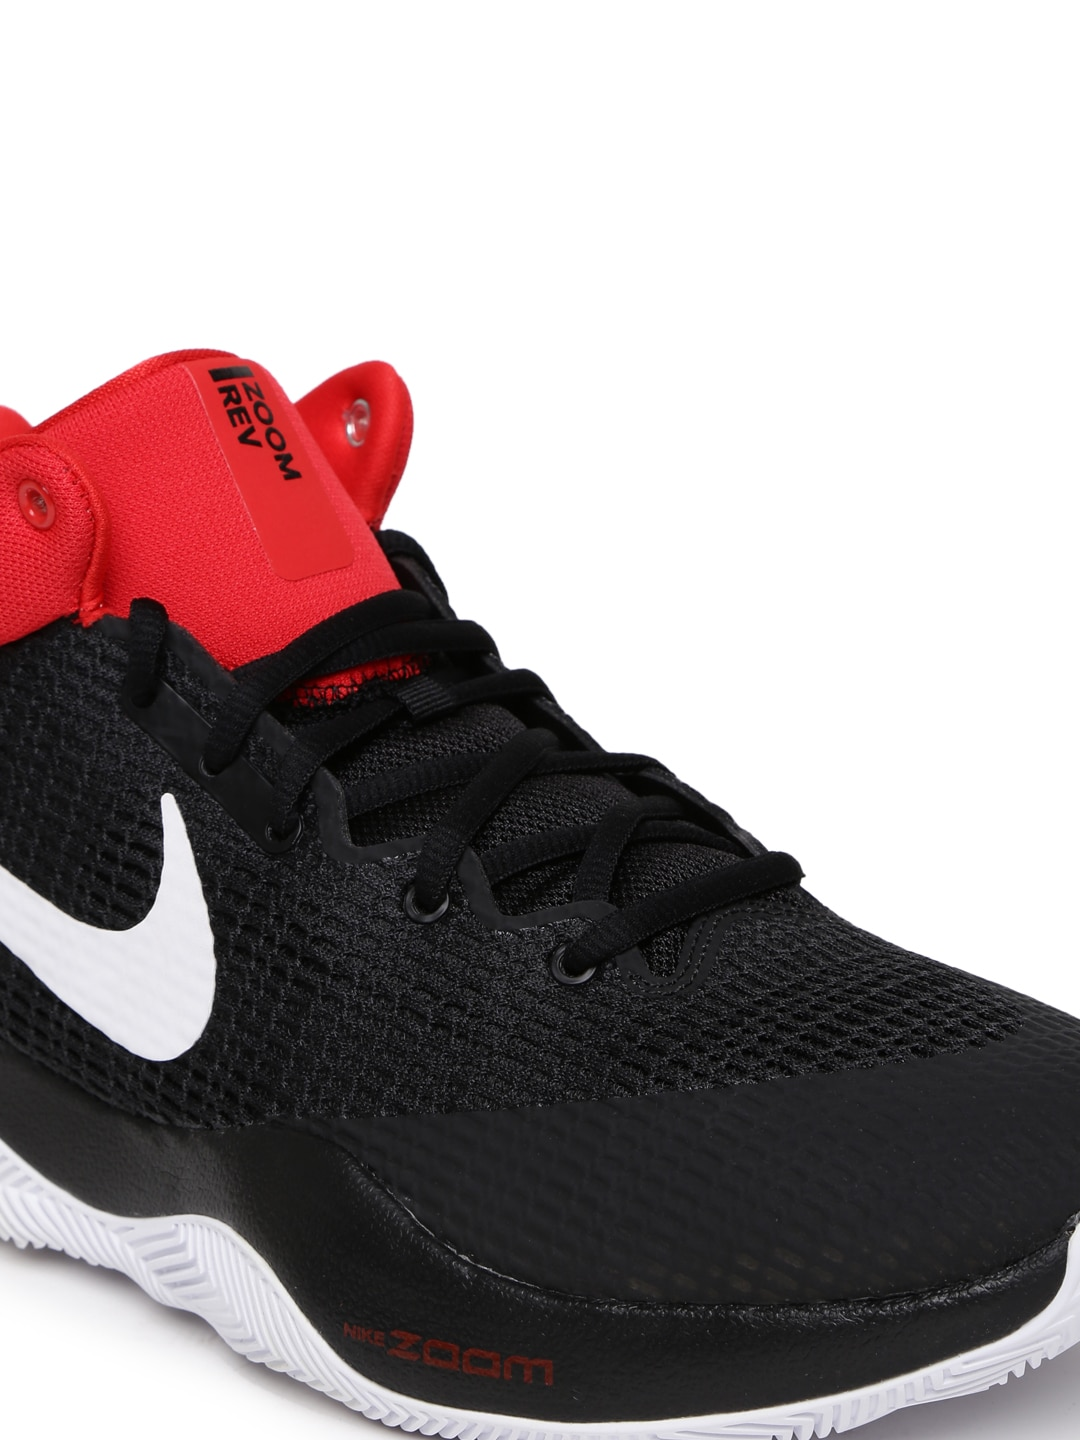 Nike Court Borough Mid Womens Basketball Shoes Review